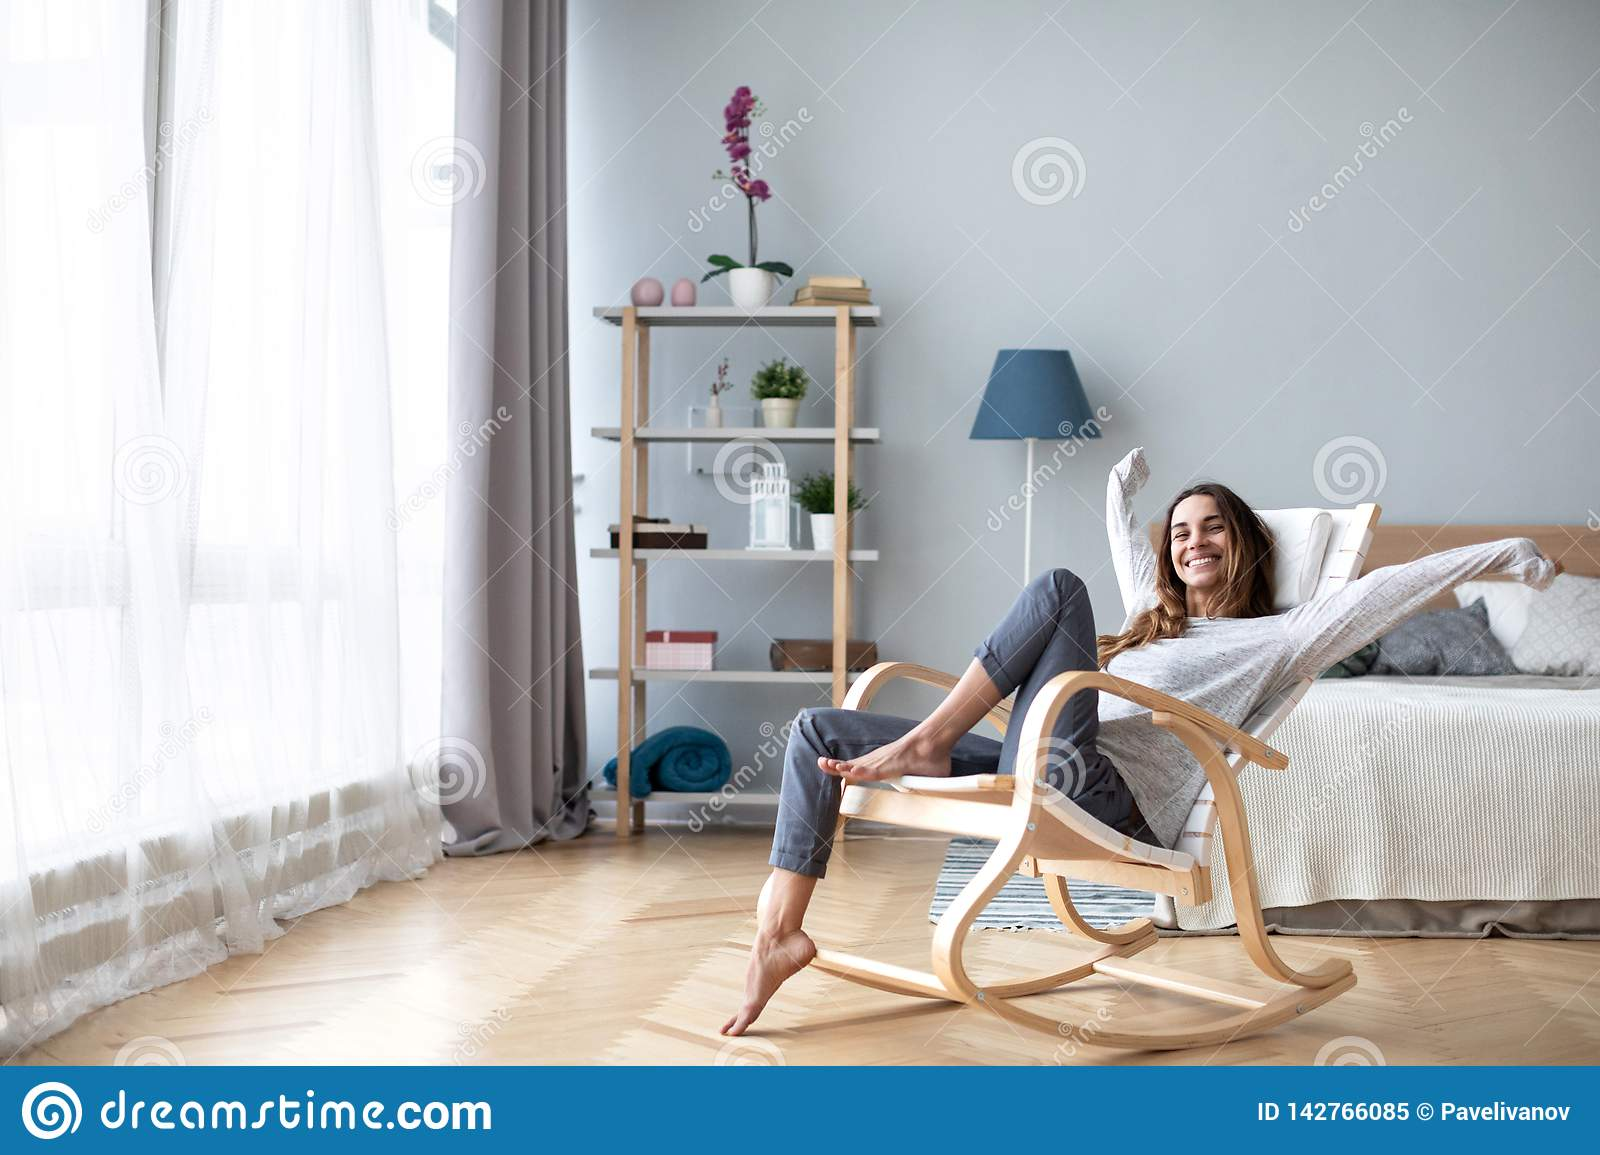 Happy woman resting comfortably sitting on modern chair in the living room at home